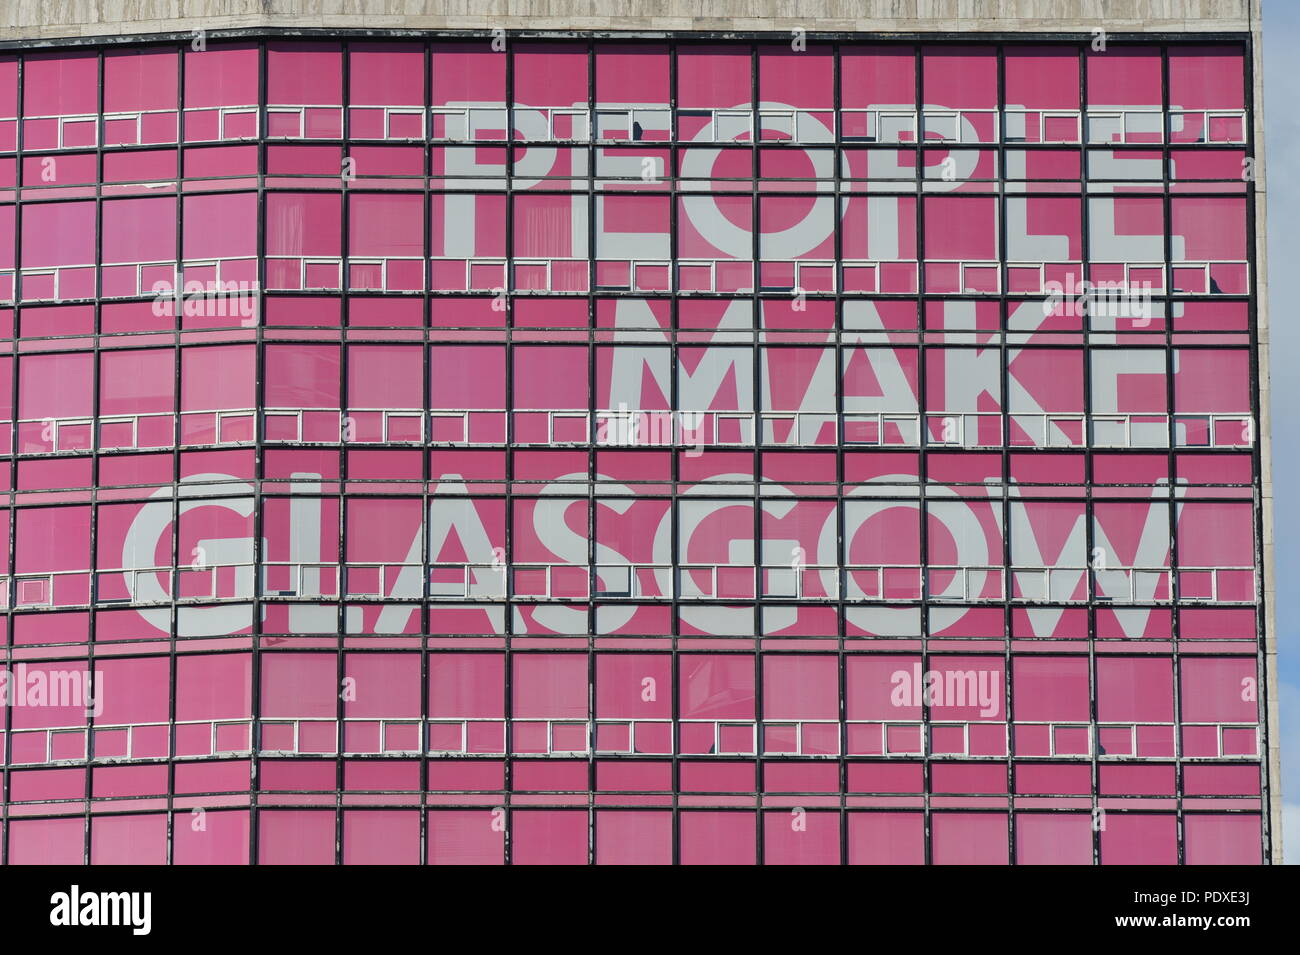 Pink Advert Imágenes De Stock & Pink Advert Fotos De Stock - Alamy